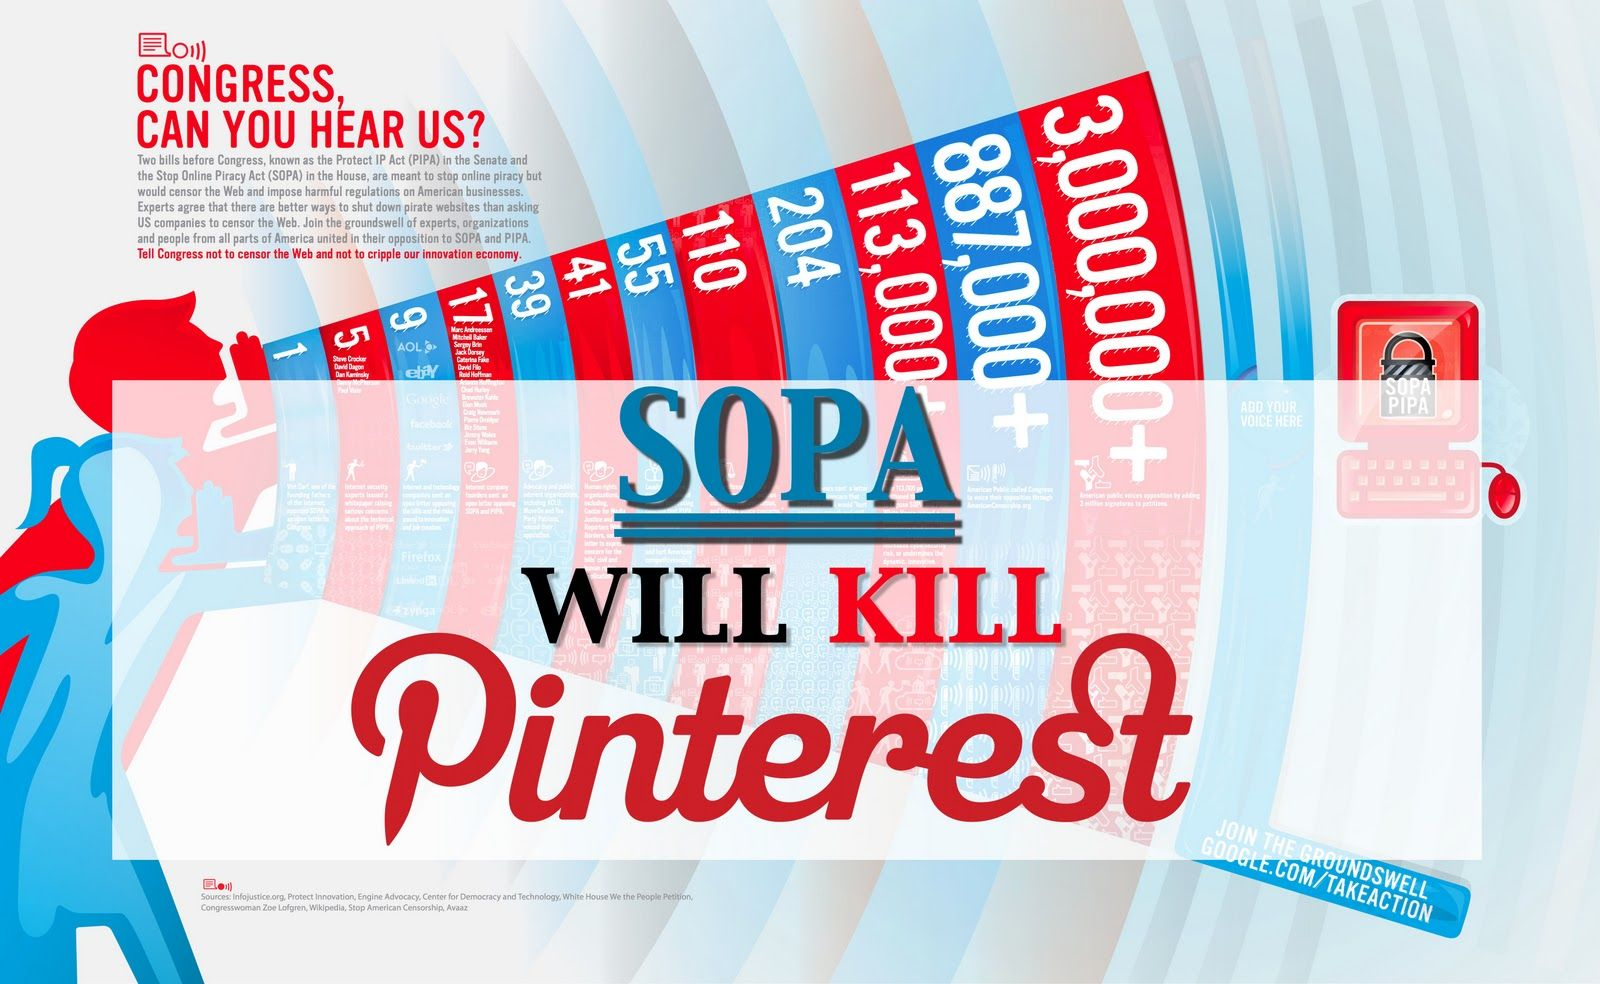 Save Pinterest, before January 24th! Sign a petition!